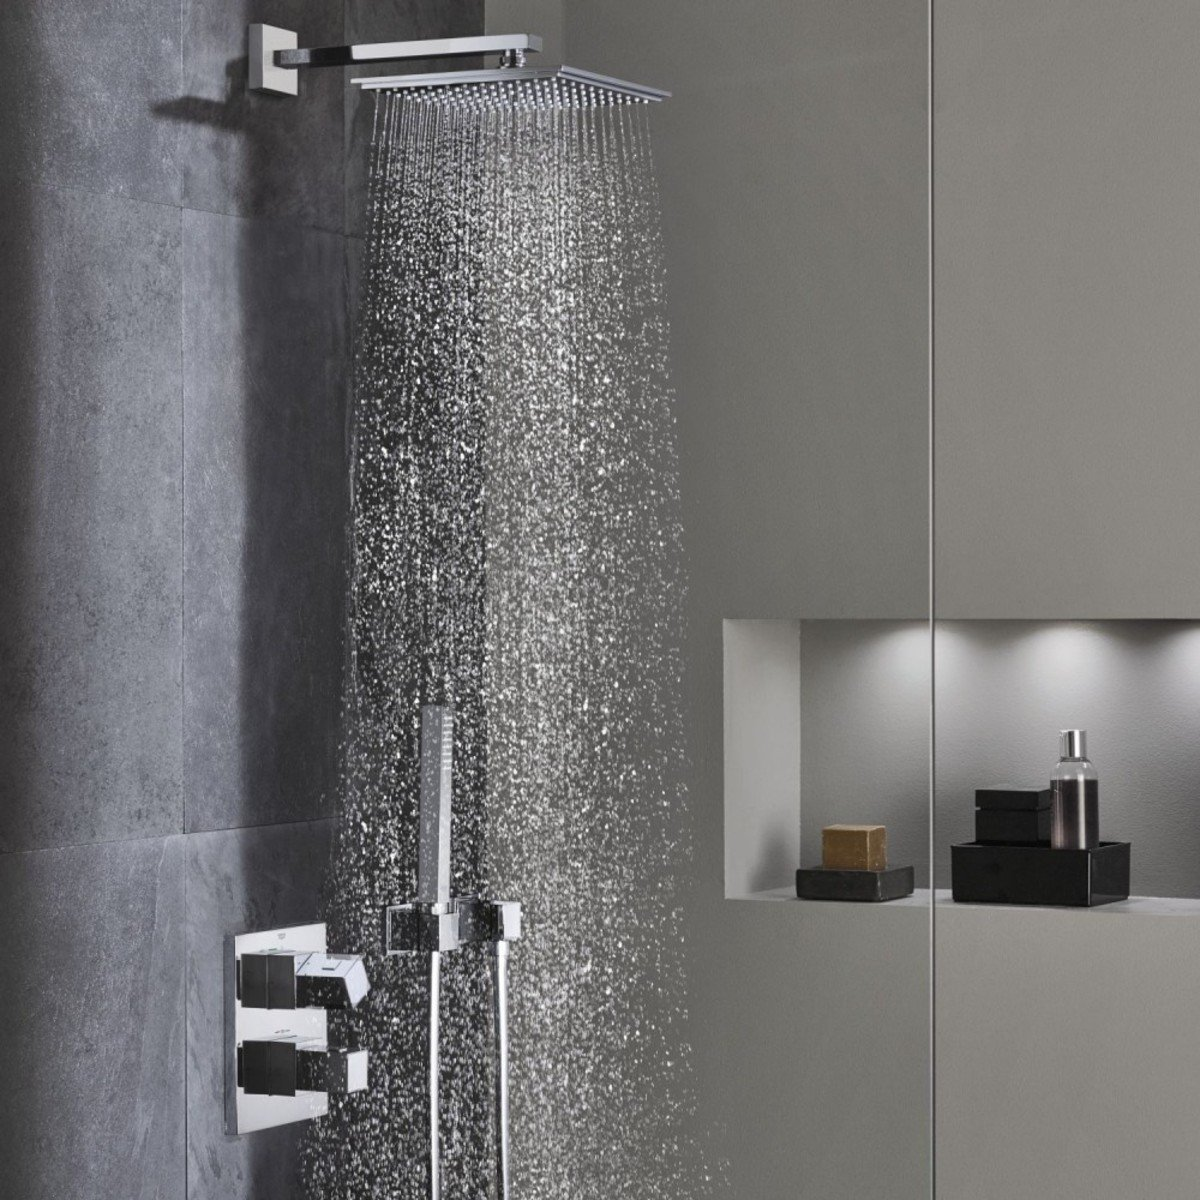 grohe cube perfect inbouw showerset met afbouwdeel. Black Bedroom Furniture Sets. Home Design Ideas